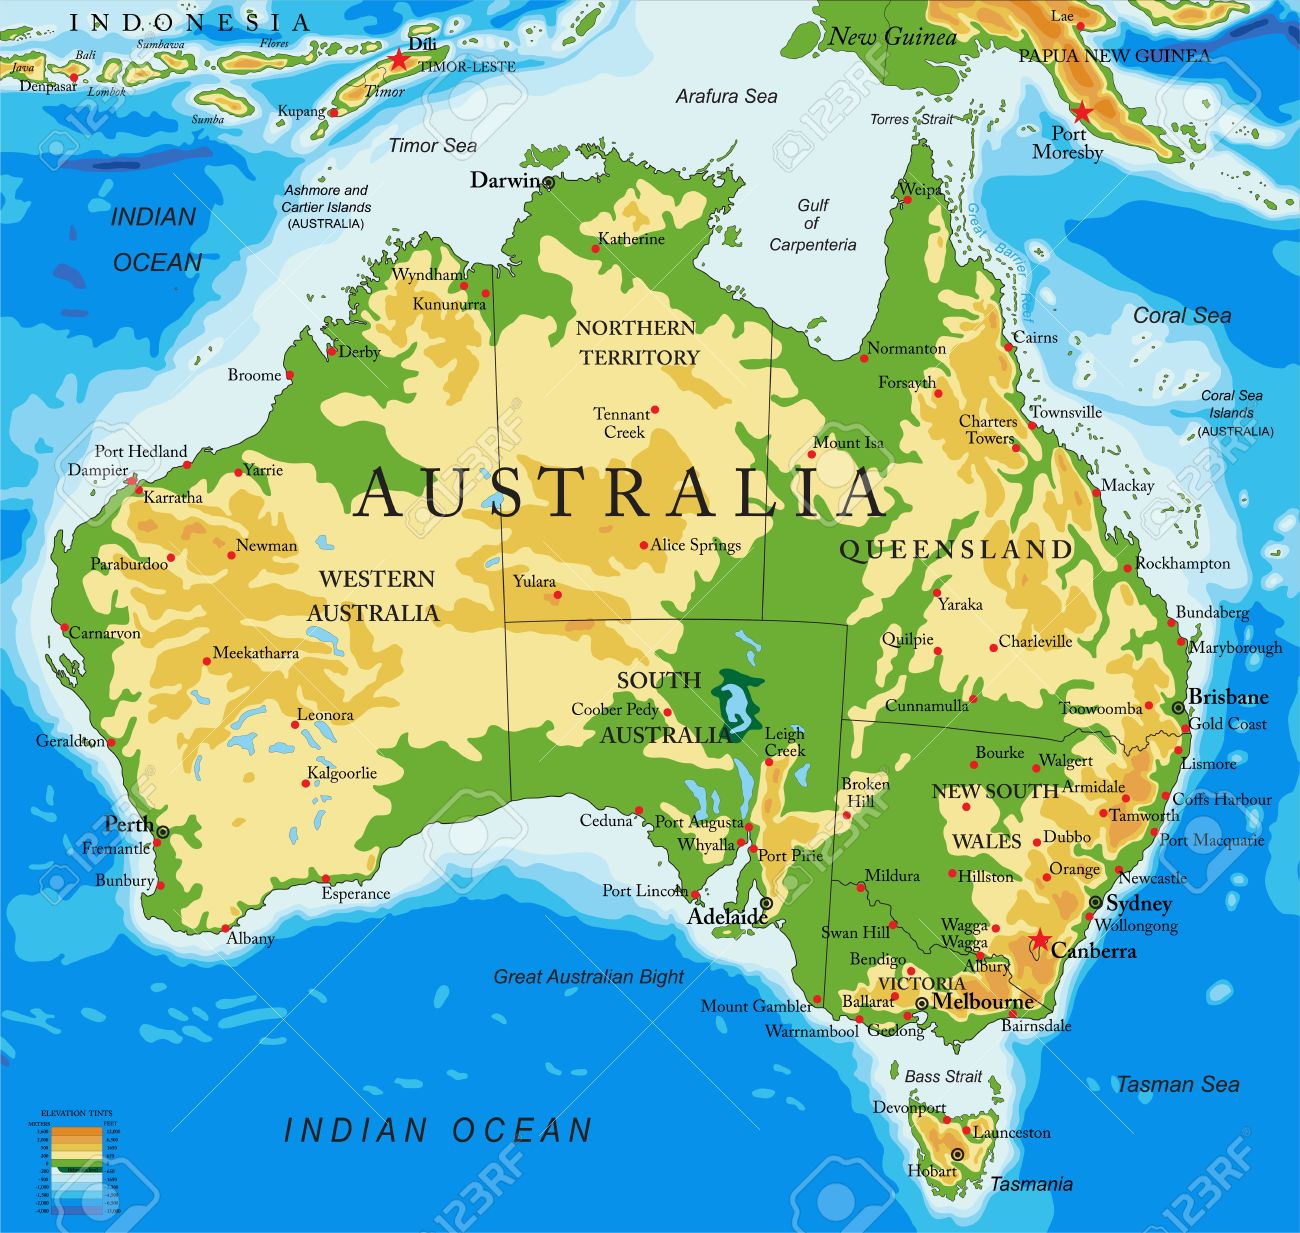 Australia Physical Map Australia physical Map Royalty Free Cliparts, Vectors, And Stock